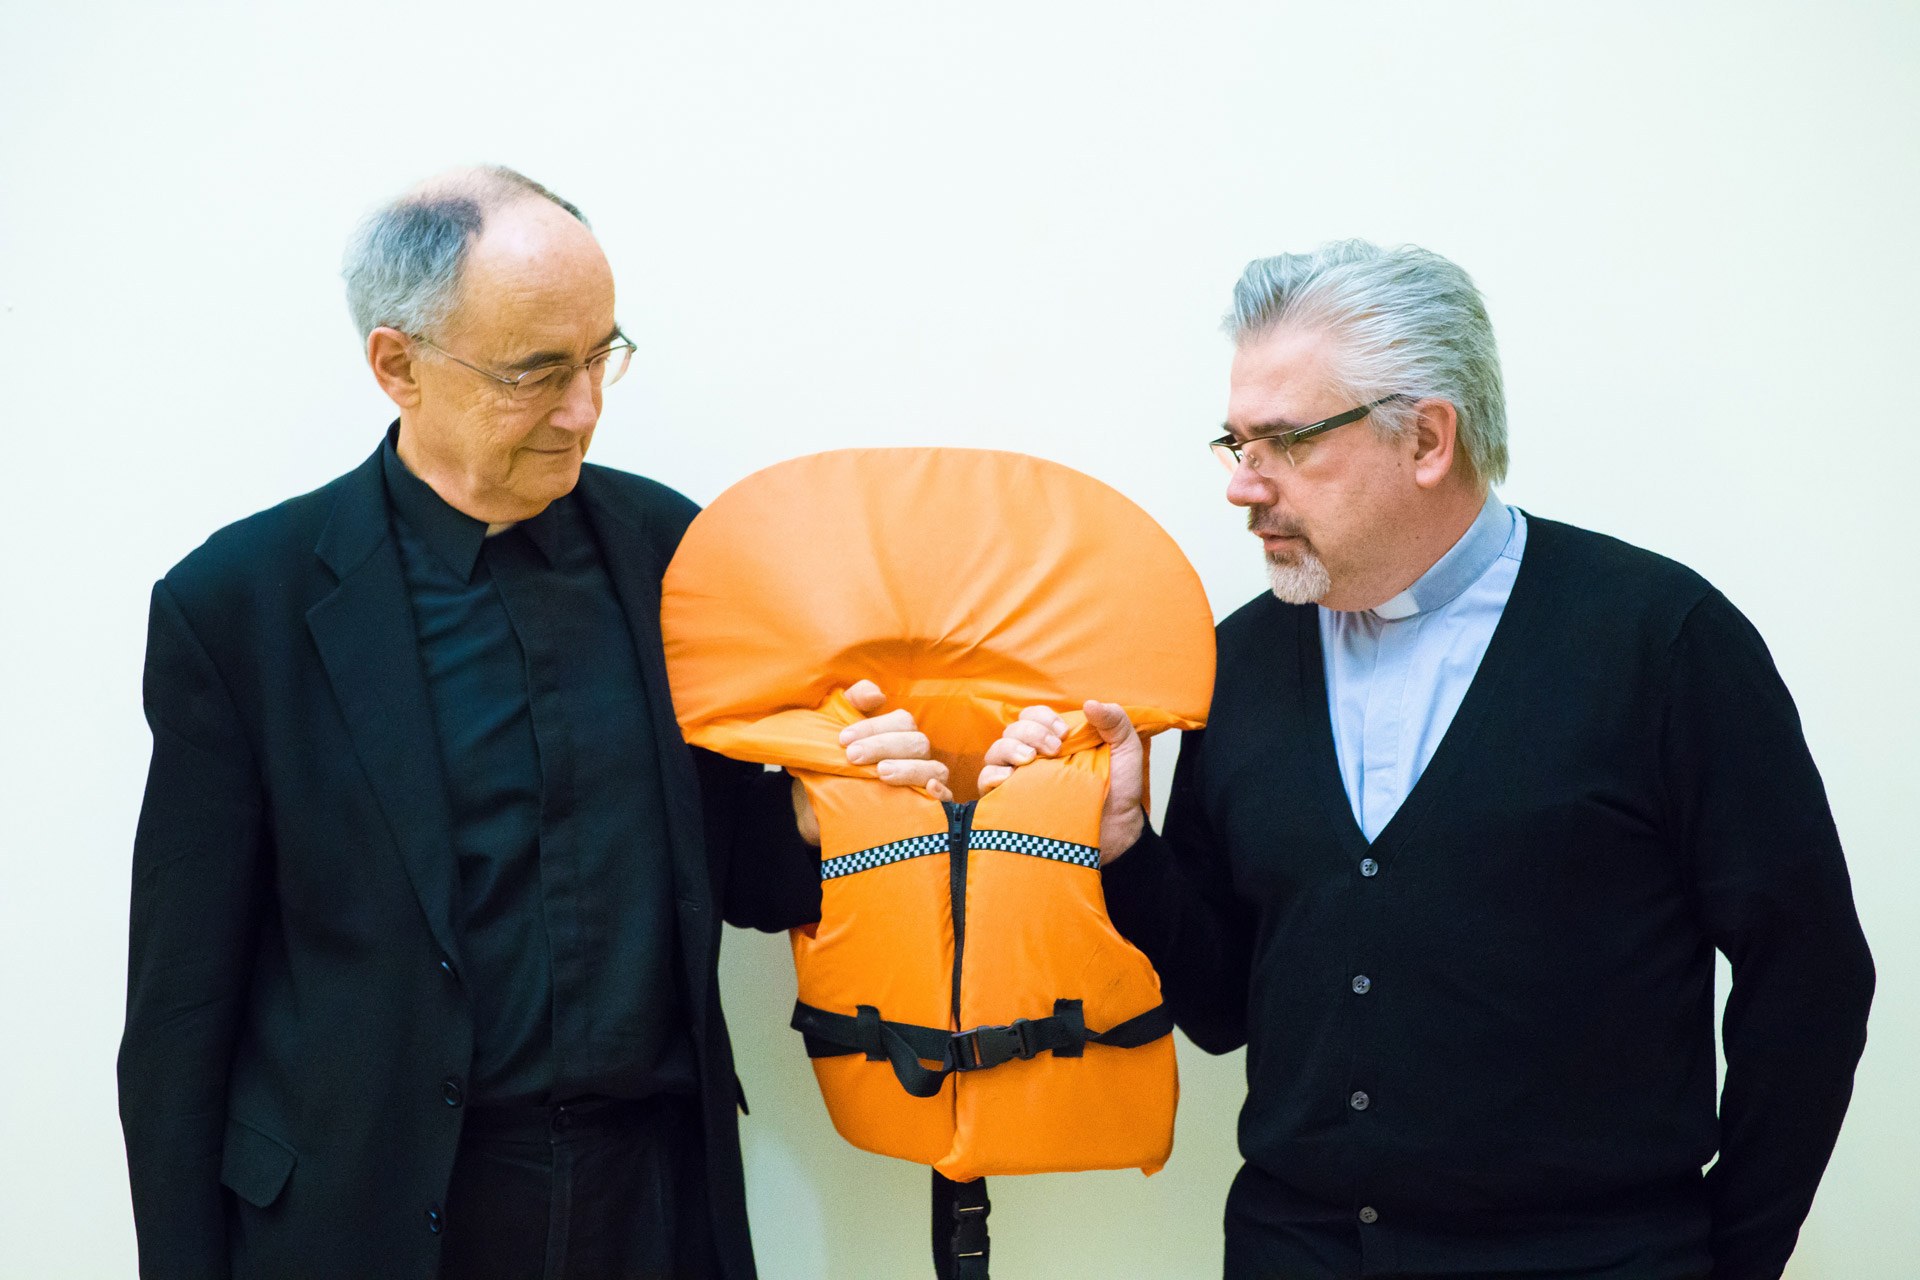 Migrants & Refugees Section - Fr. Michael Czerny, SJ & Fr. Baggio